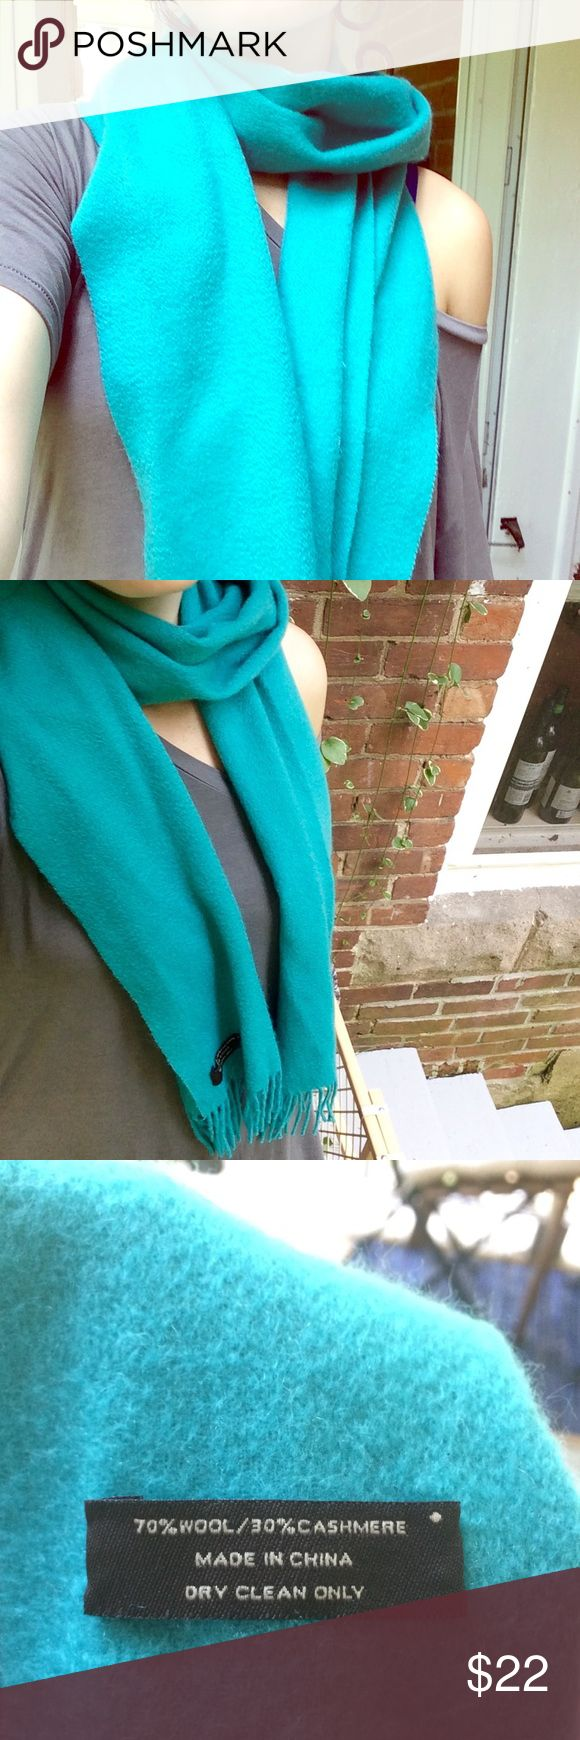 ✨Coach Wool & Cashmere teal scarf...super soft🍁 Gently used Coach wool and cashmere blend scarf in a teal color. Very soft! Fringed edges. Perfect for a pop of color against a neutral jacket in fall! 🍂 Coach Accessories Scarves & Wraps